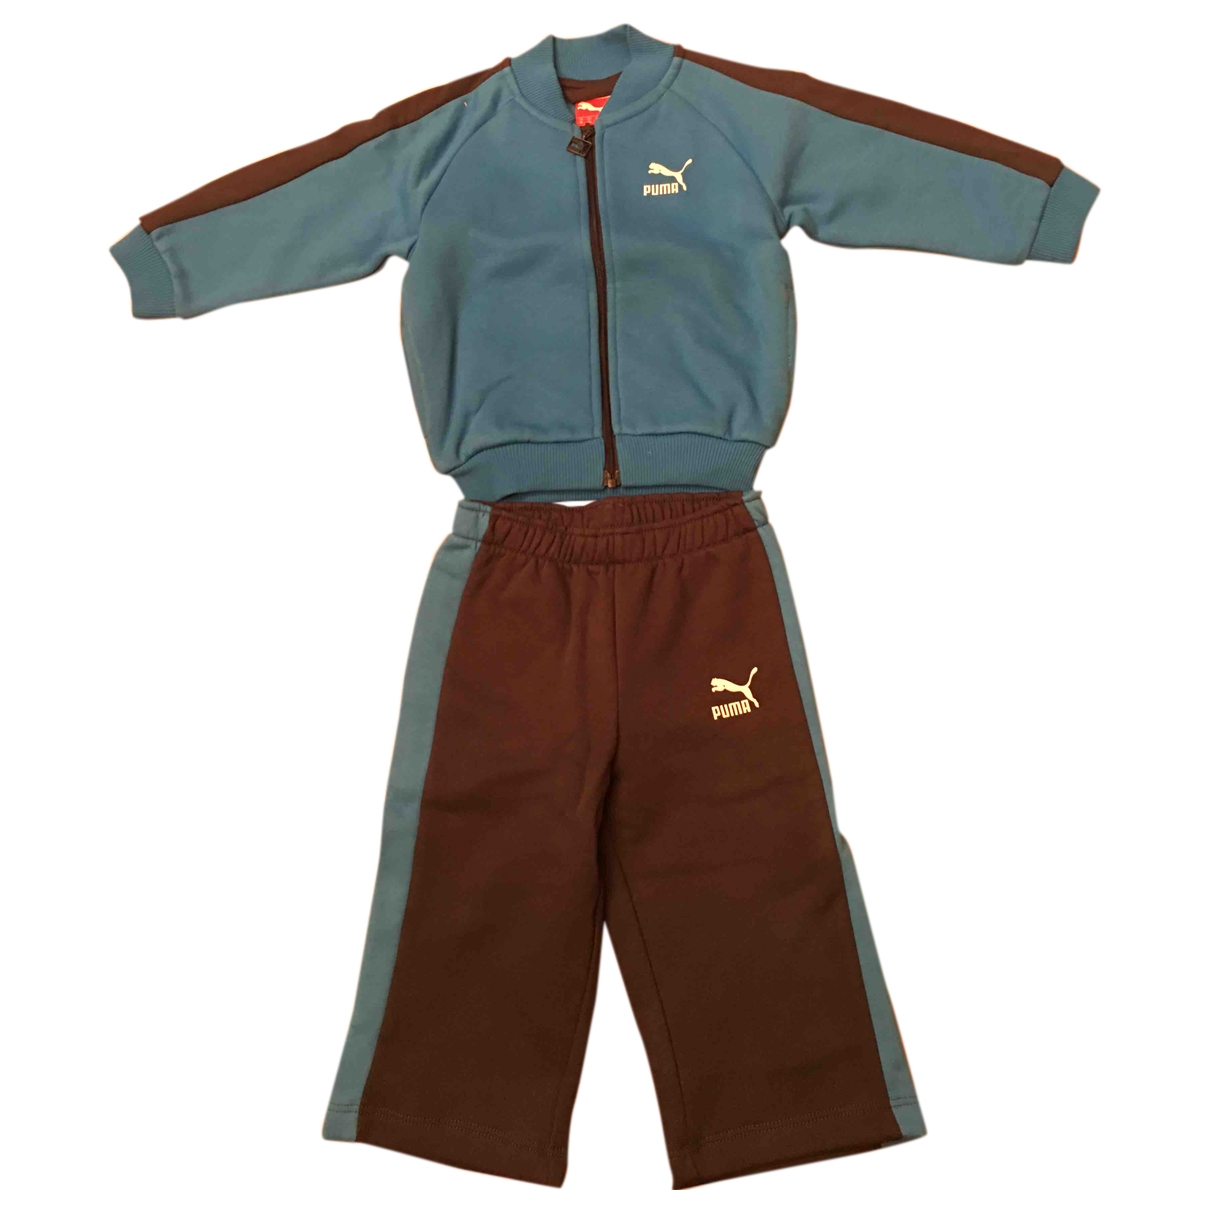 Puma \N Blue Cotton Outfits for Kids 9 months - until 28 inches UK